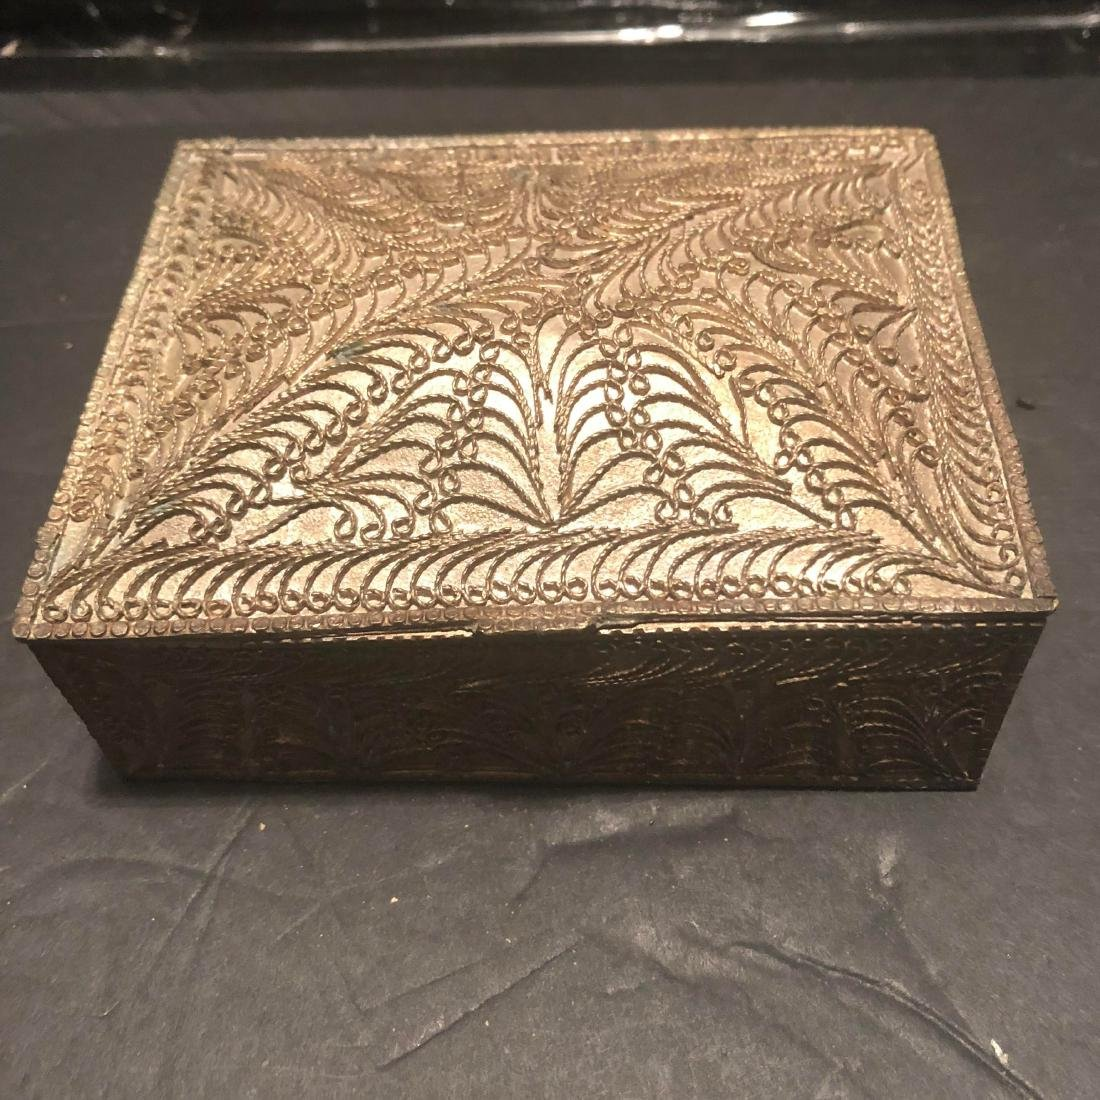 Antique Persian Solid Silver Cigarette Box 1890 - 3